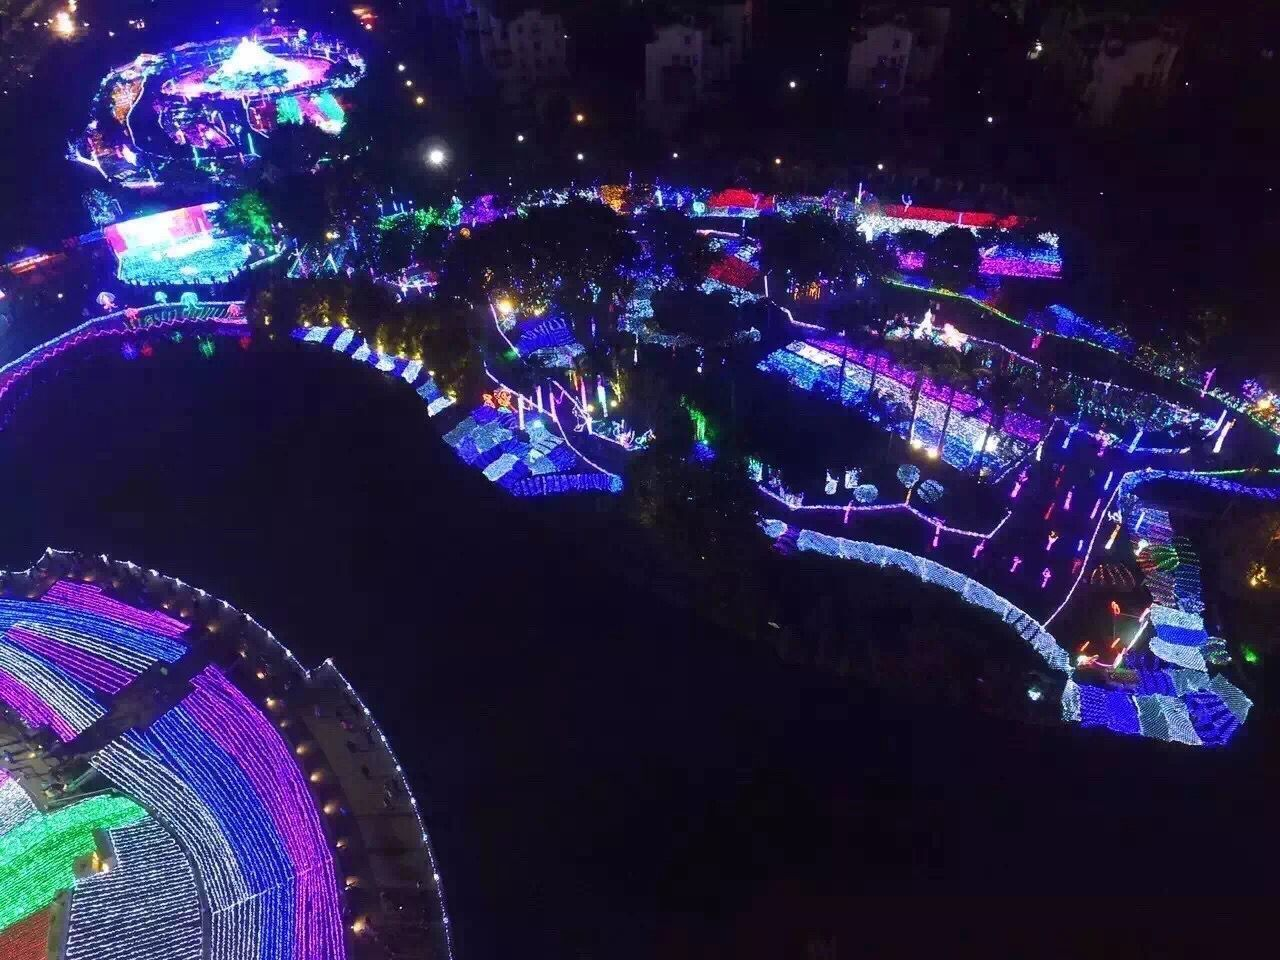 Open air light show draws crowds at Danzhou Tropical Botanical Garden